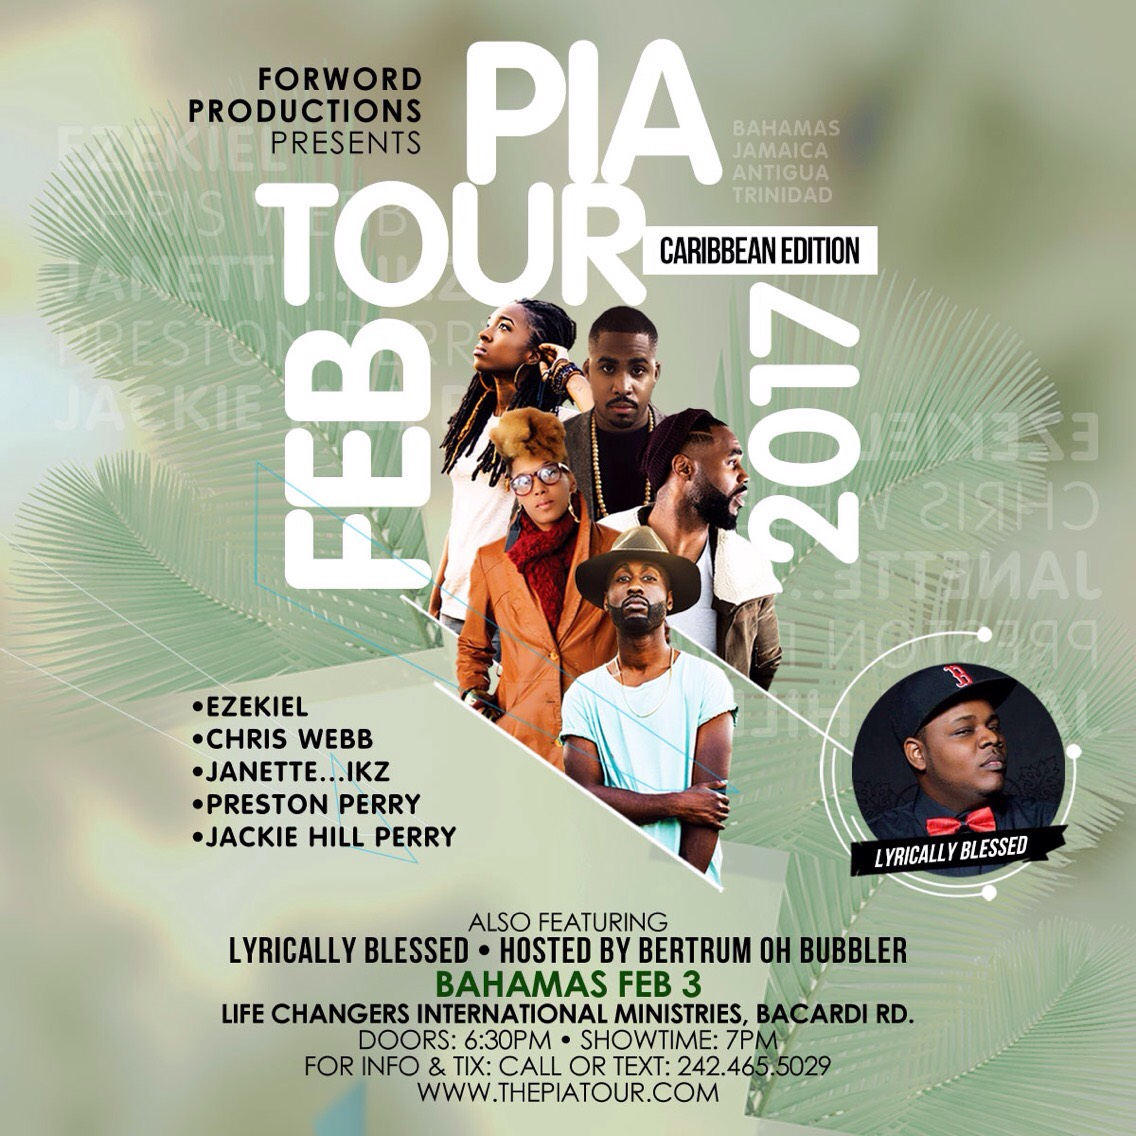 The PIA Tour | Caribbean Edition